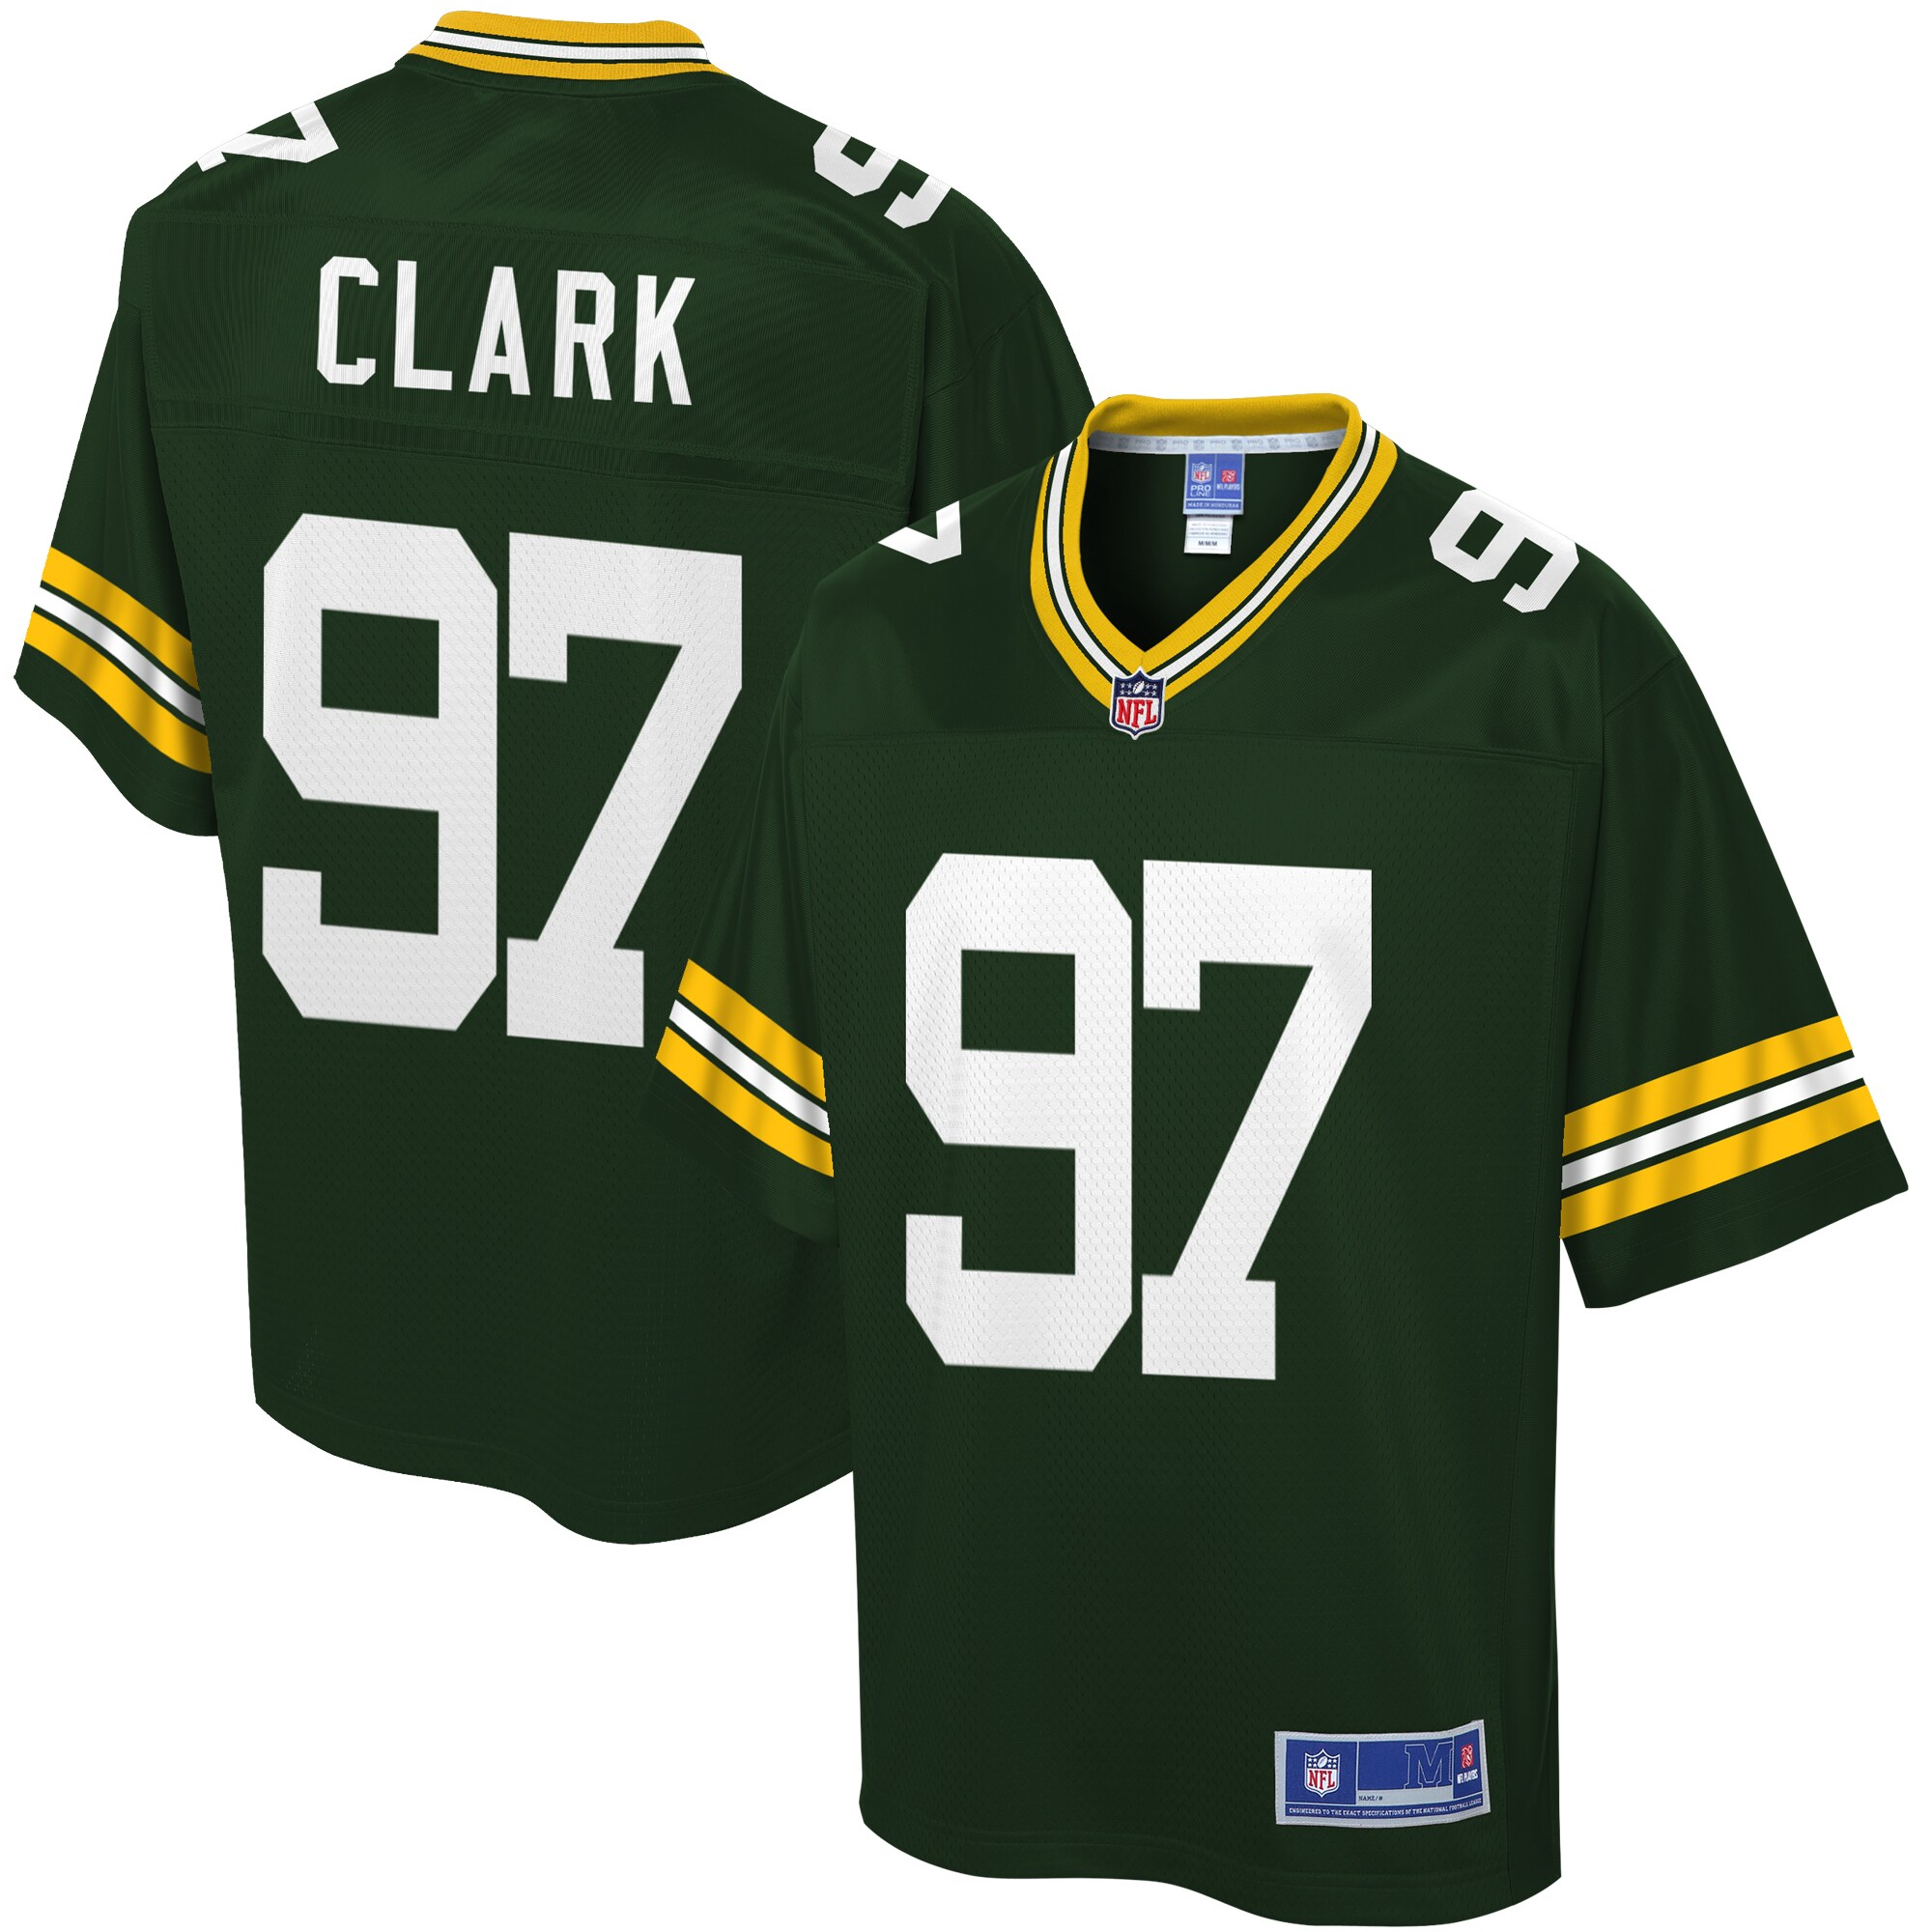 Kenny Clark Green Bay Packers NFL Pro Line Youth Player Jersey - Green